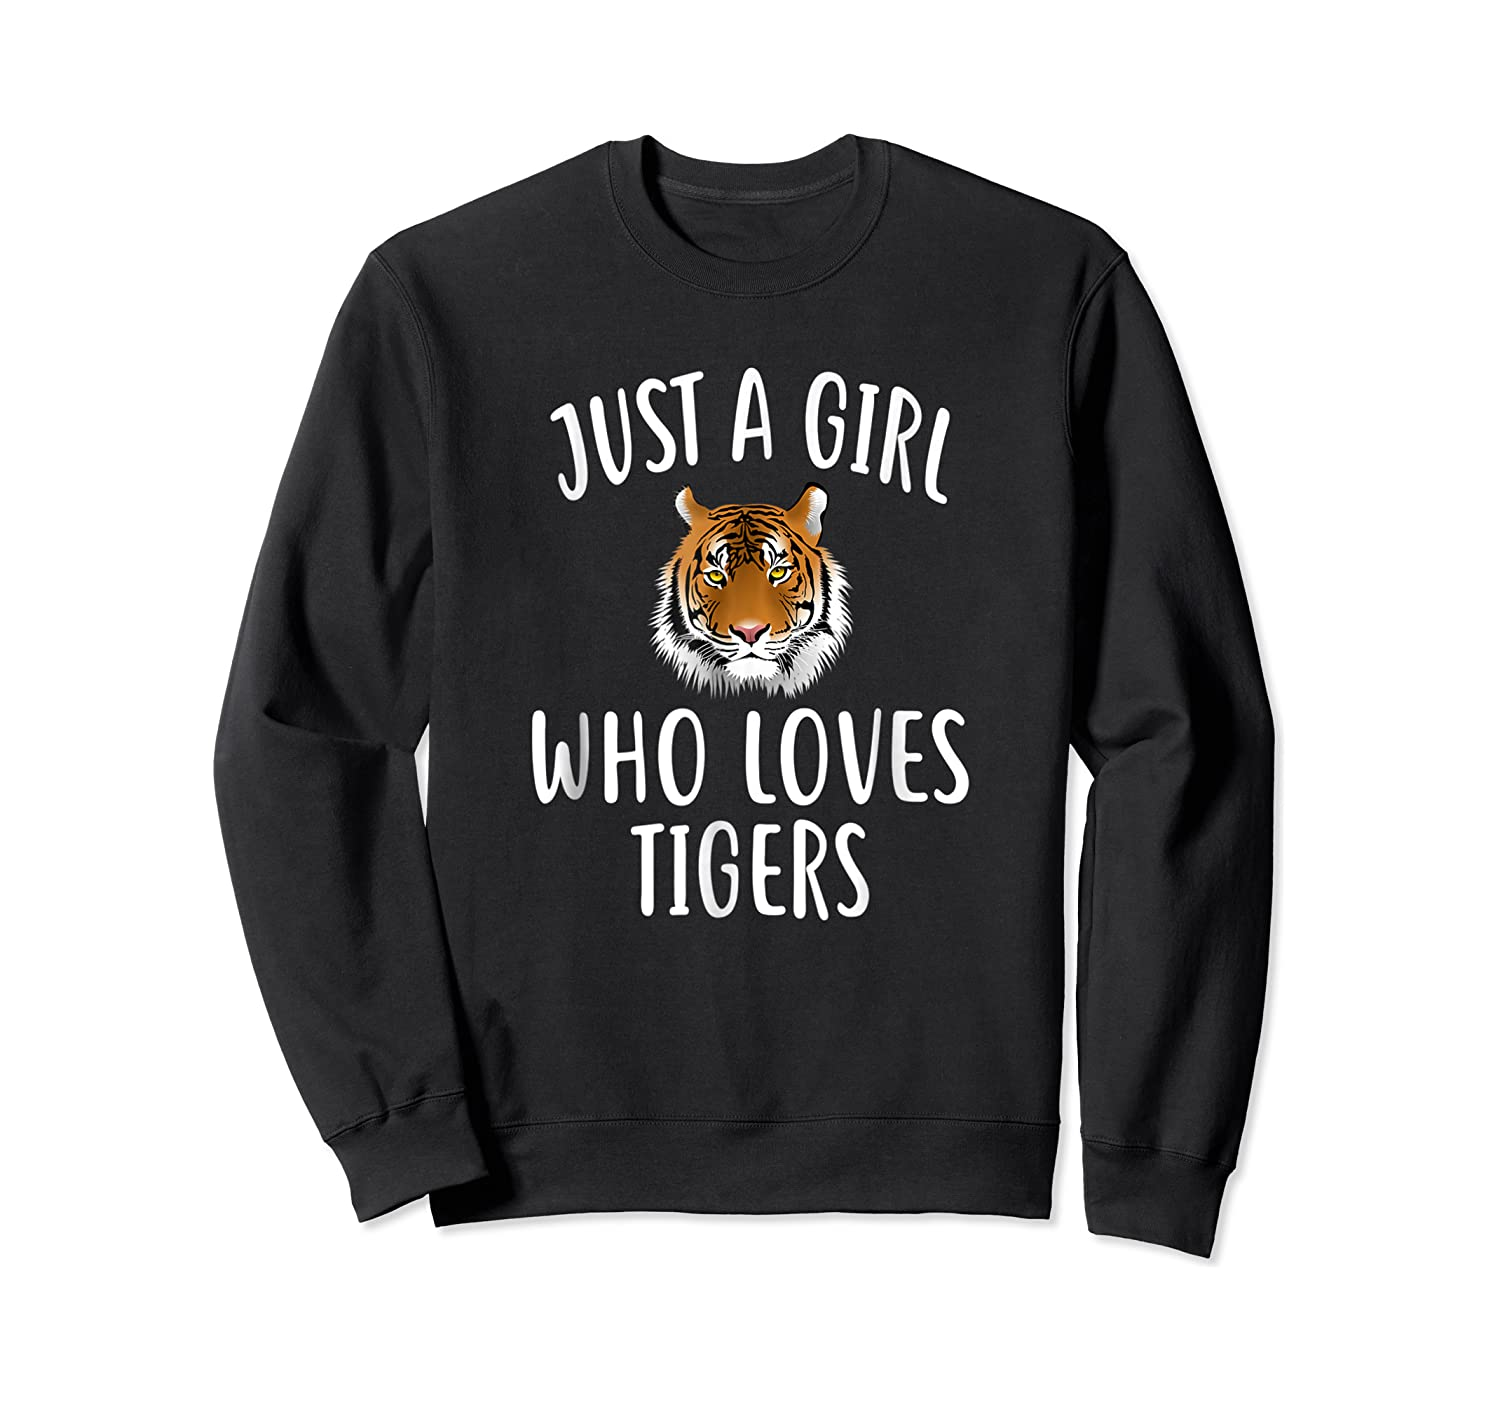 Just A Girl Who Loves Tigers Funny Tiger Shirts Crewneck Sweater